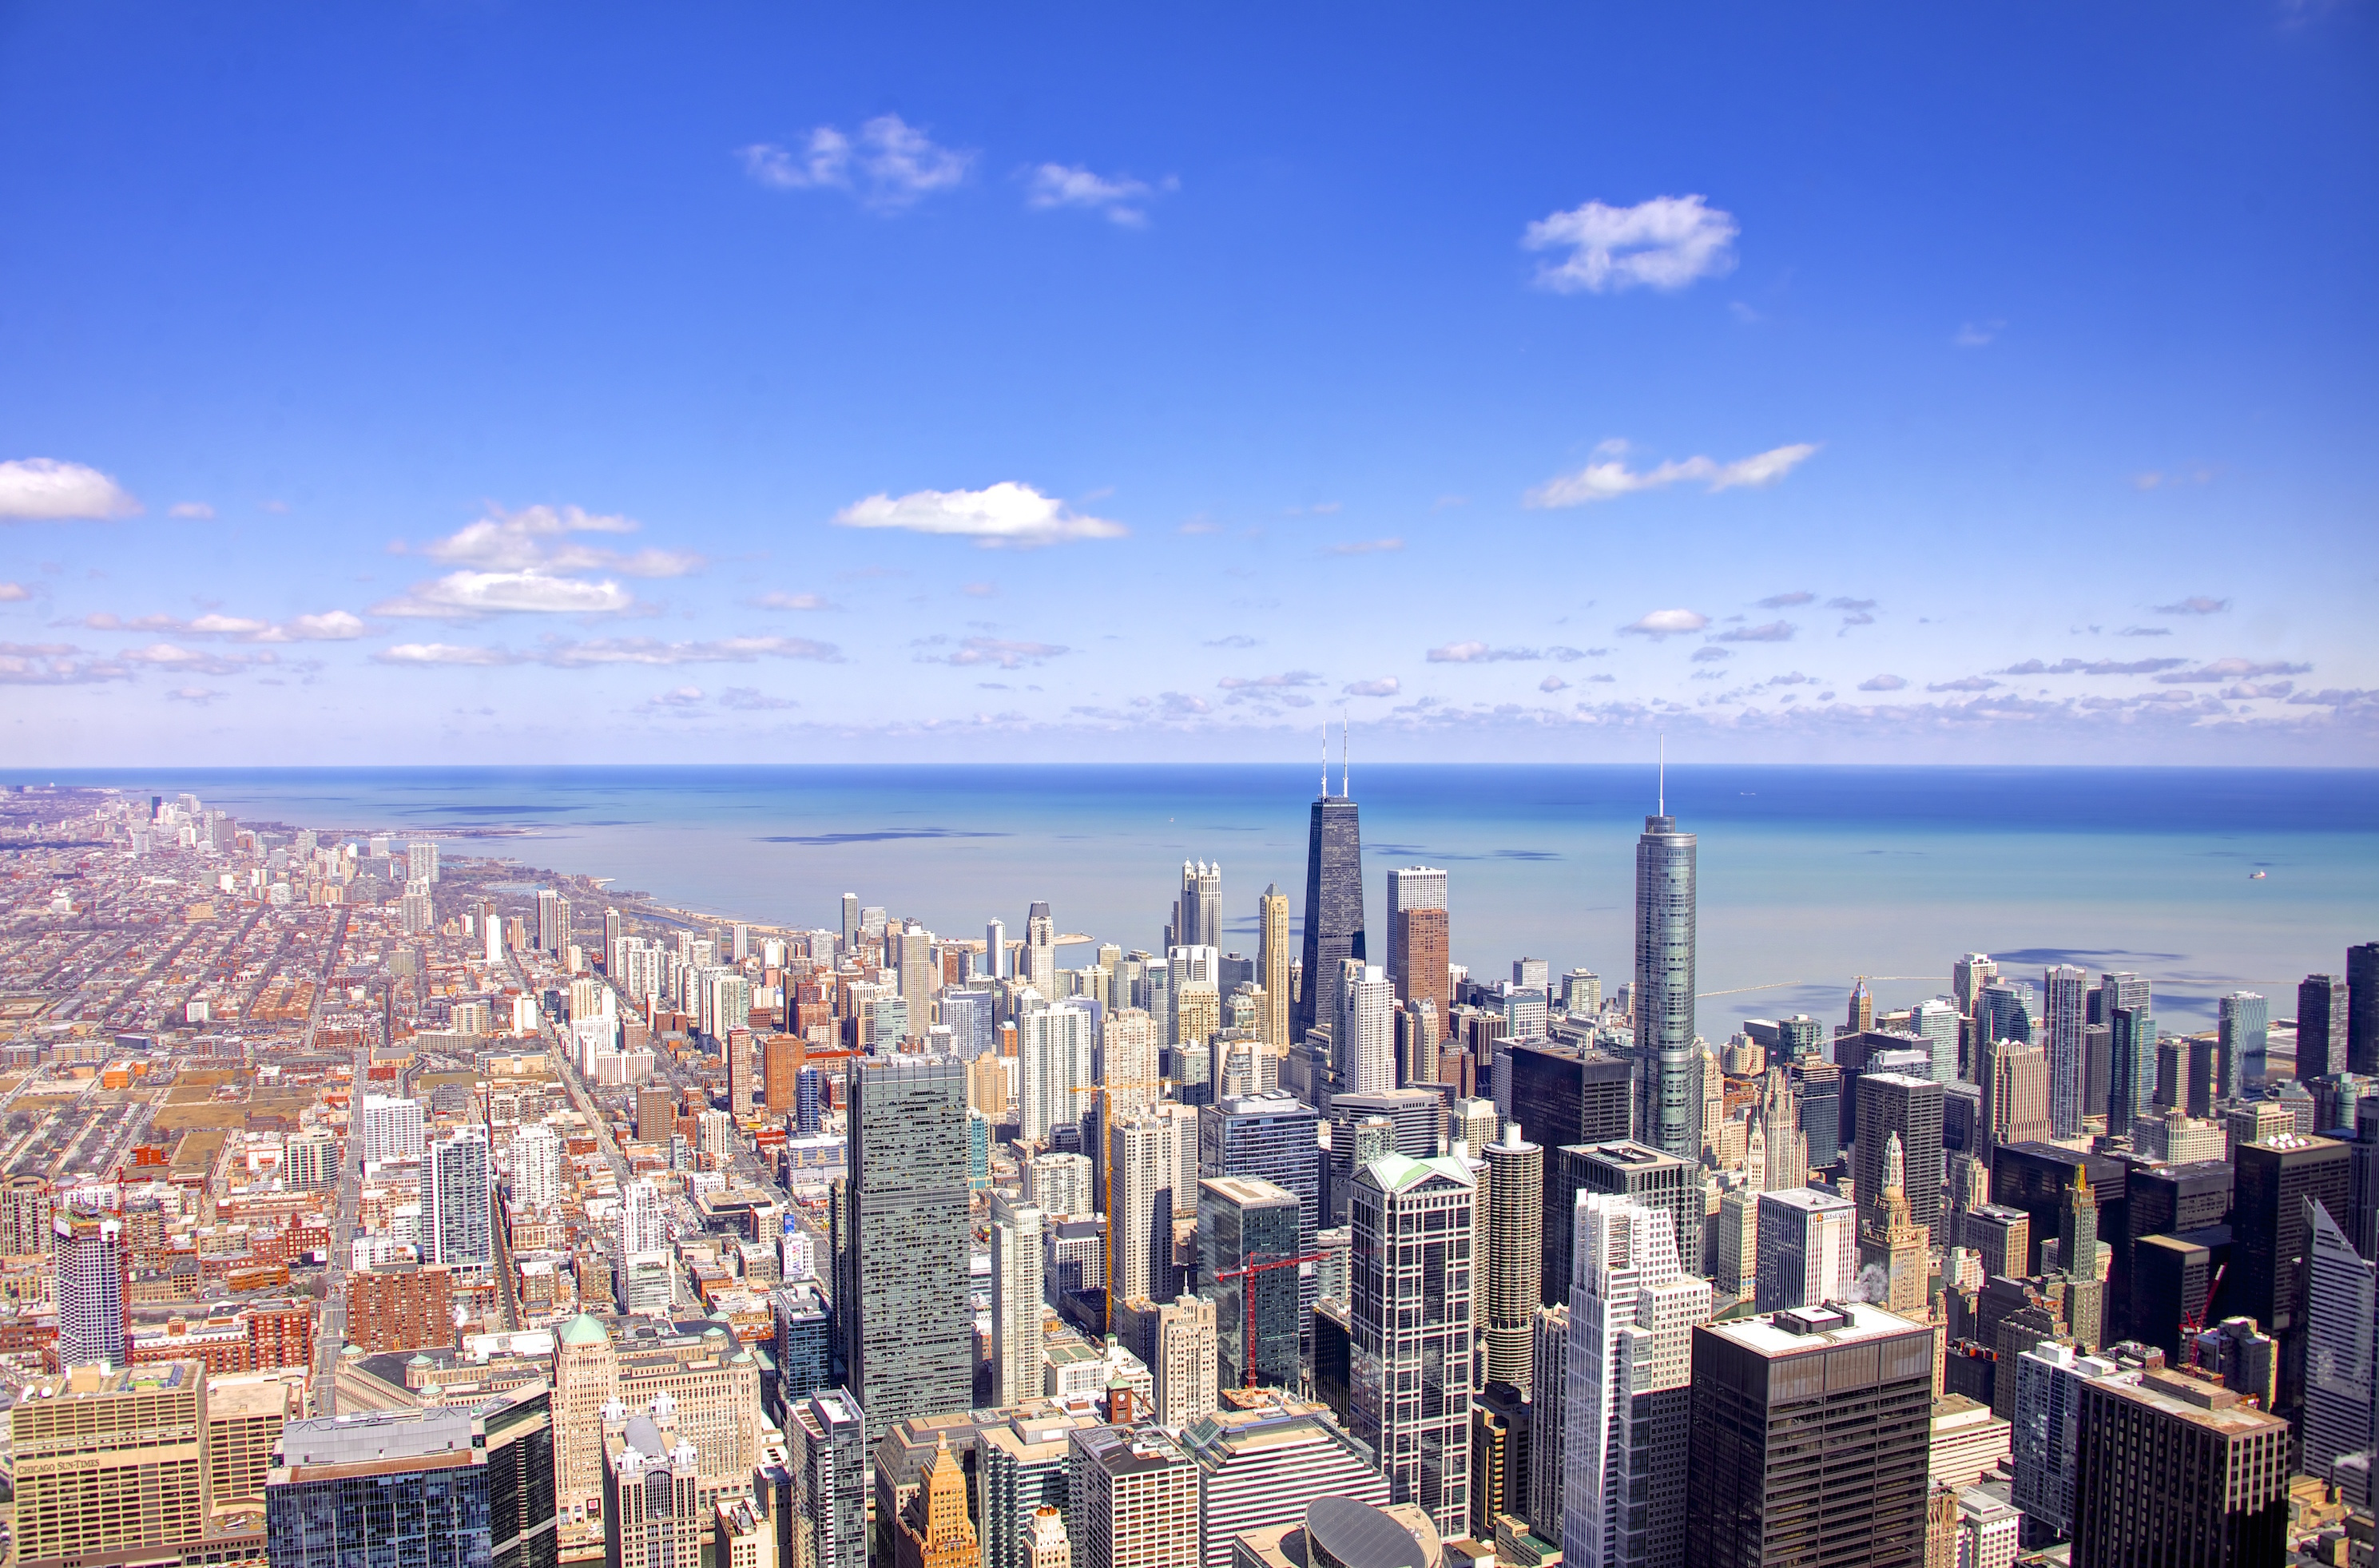 A new study has identified the least affordable neighborhoods in Chicago